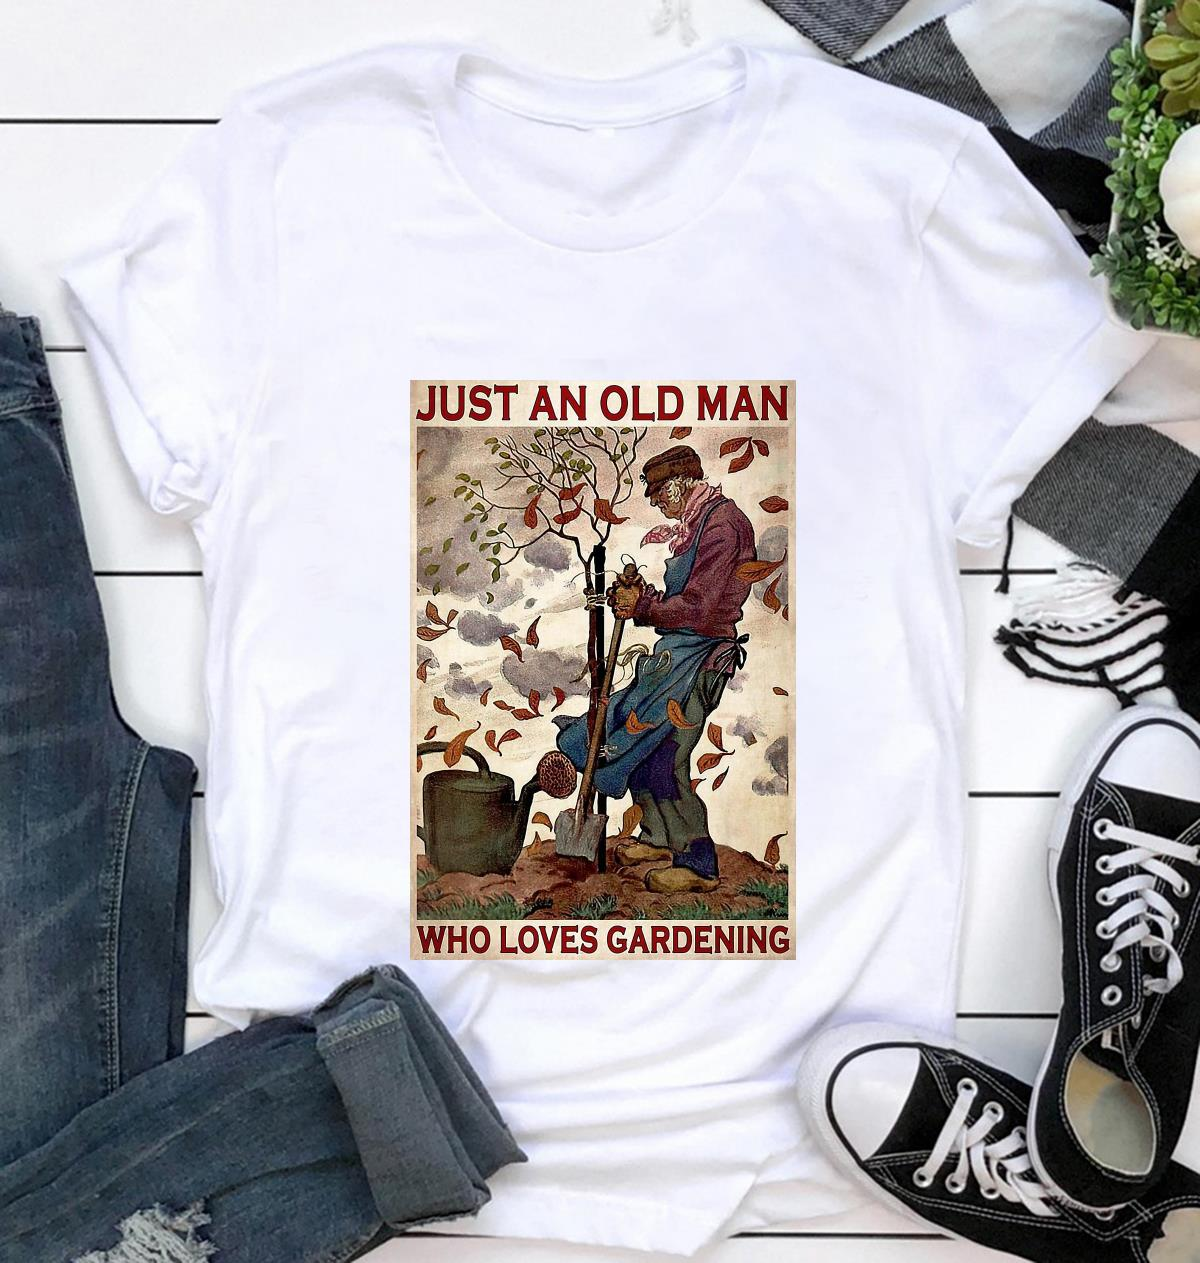 Just an old man who really loved gardening poster t-shirt